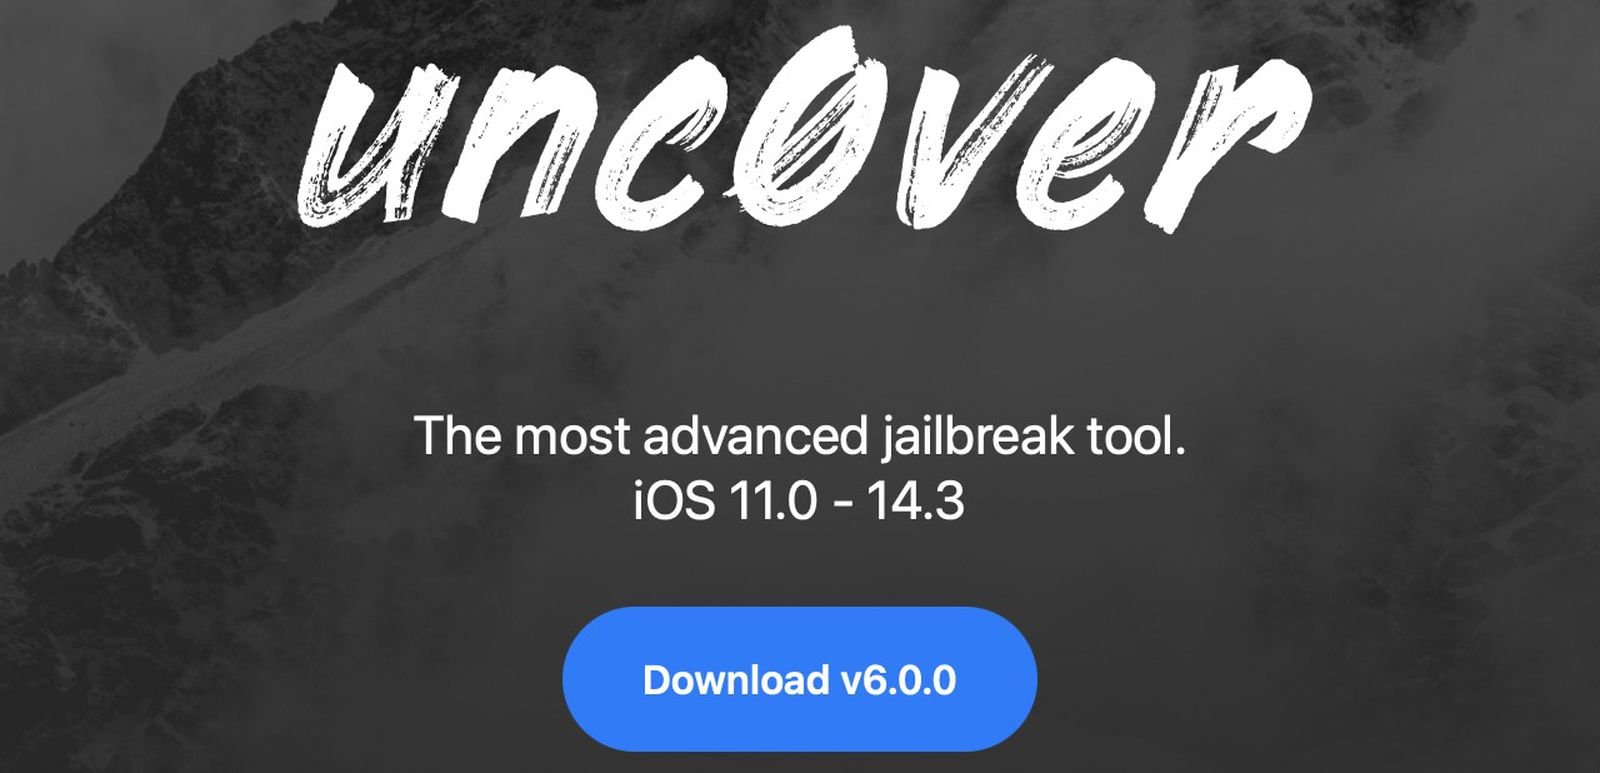 Jailbreak tool 'unc0ver' 6.0.0 released with iOS 14.3 compatibility